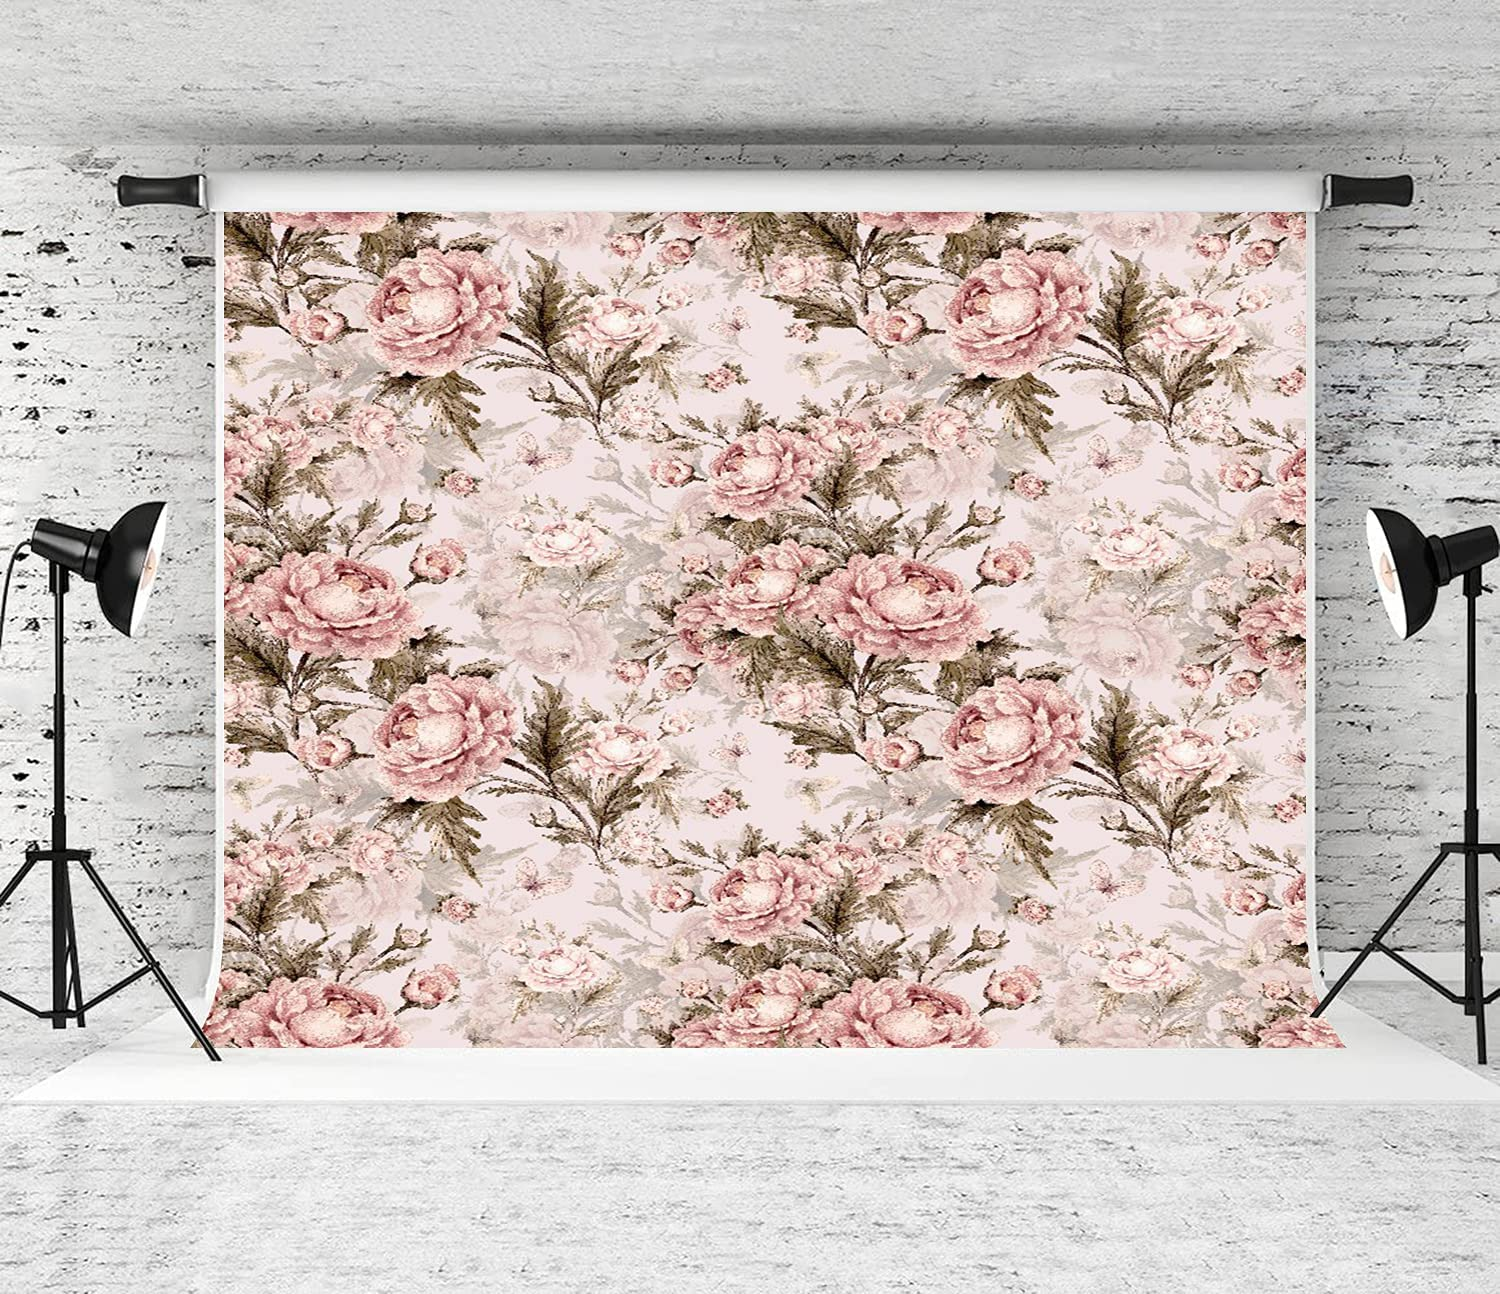 JISMUCI Ranking TOP11 Photography Background Seamless Pattern Max 72% OFF Watercolor Roses